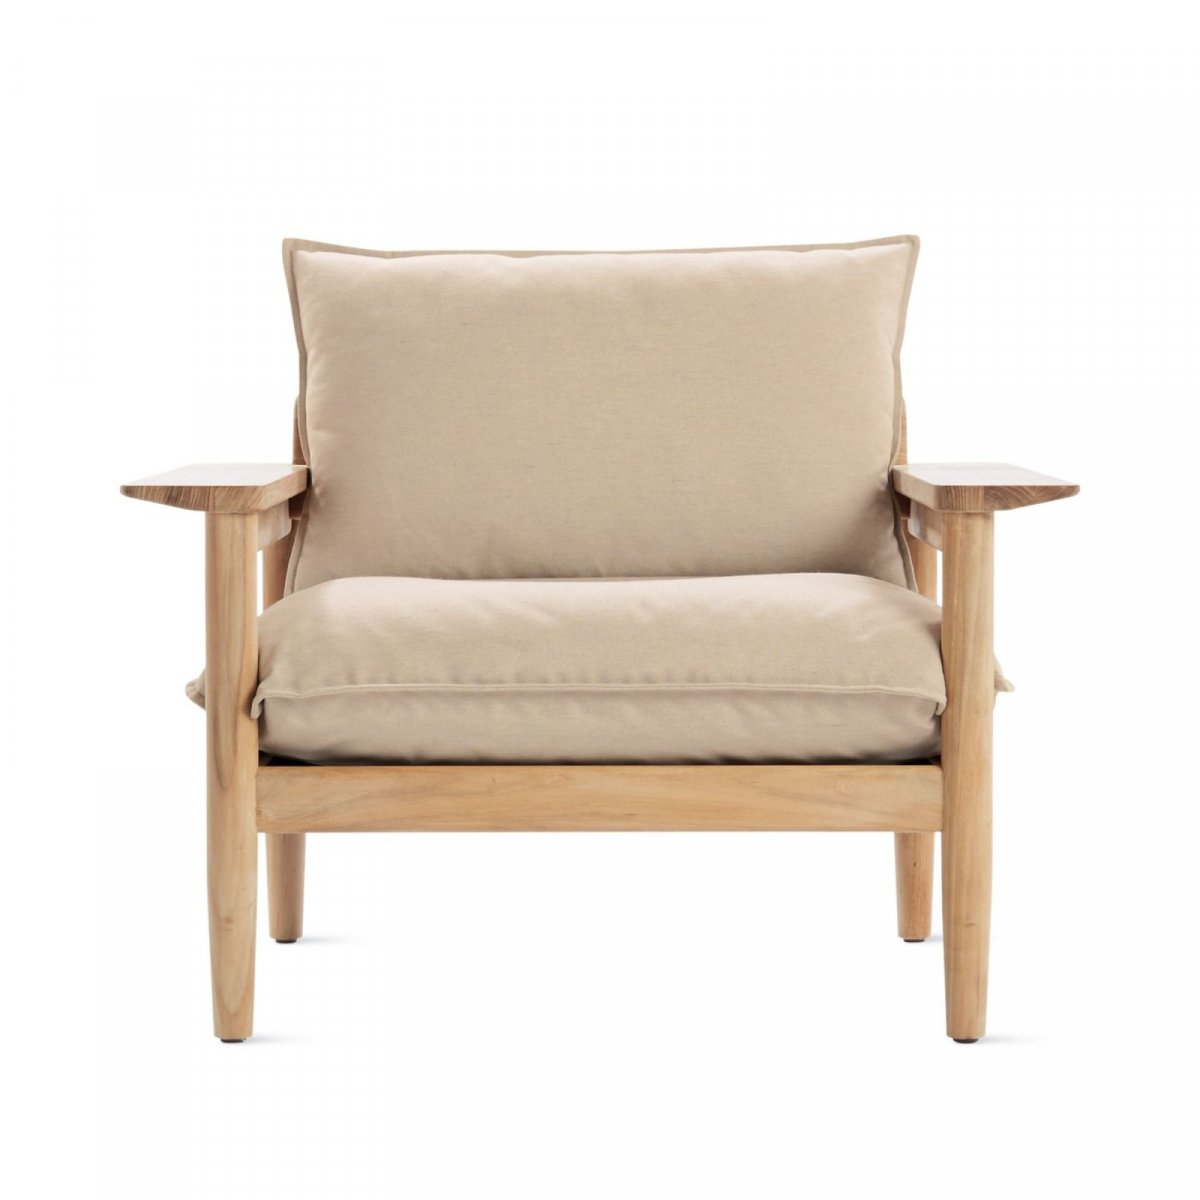 Terassi Lounge Chair, papyrus, front view.